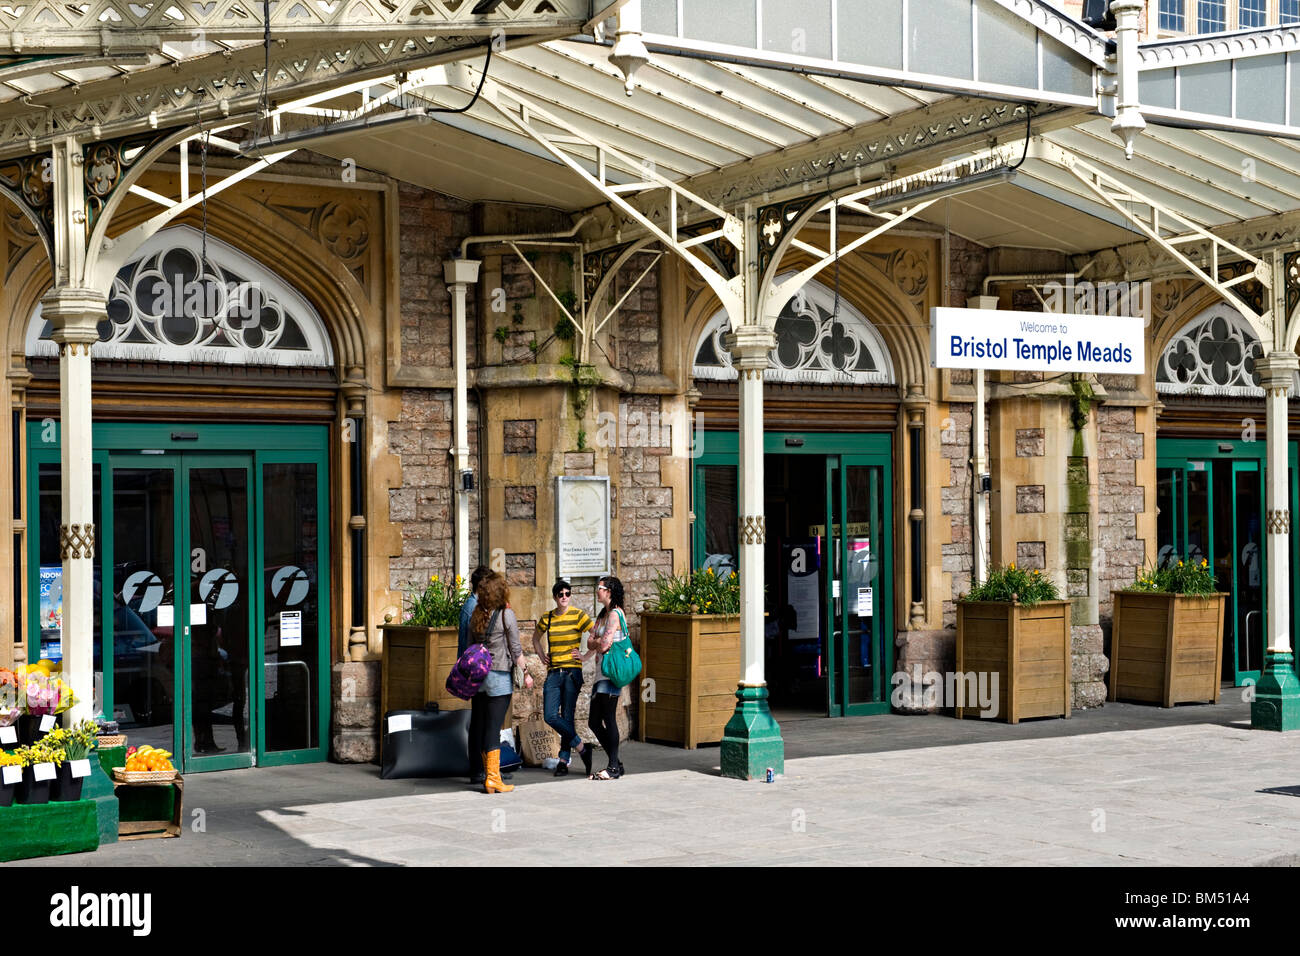 Bristol Temple Meads Railway Station Stock Photo